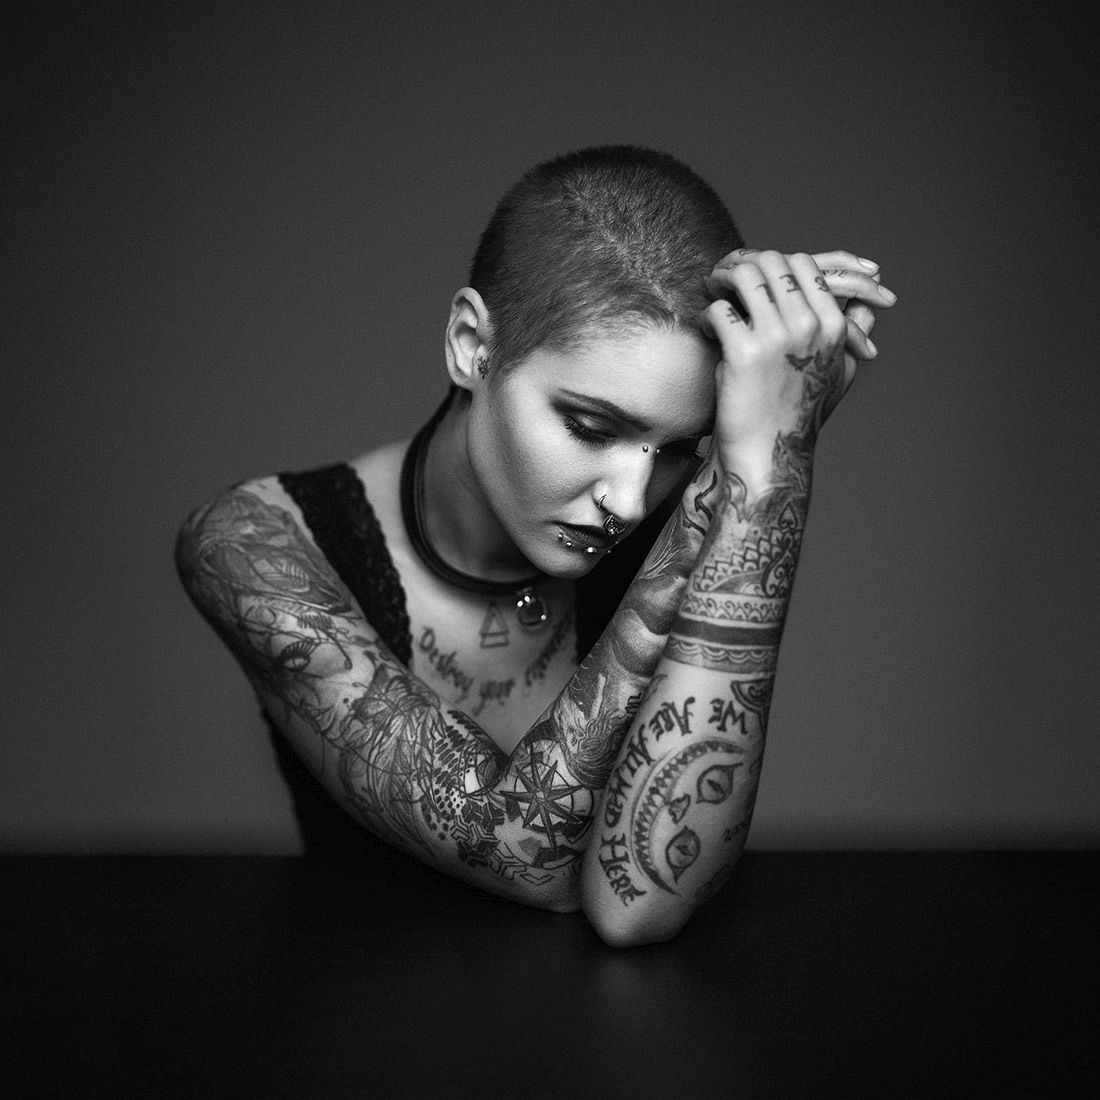 Marco Gressler: Tattoo / 1st Place in Portrait (Single)